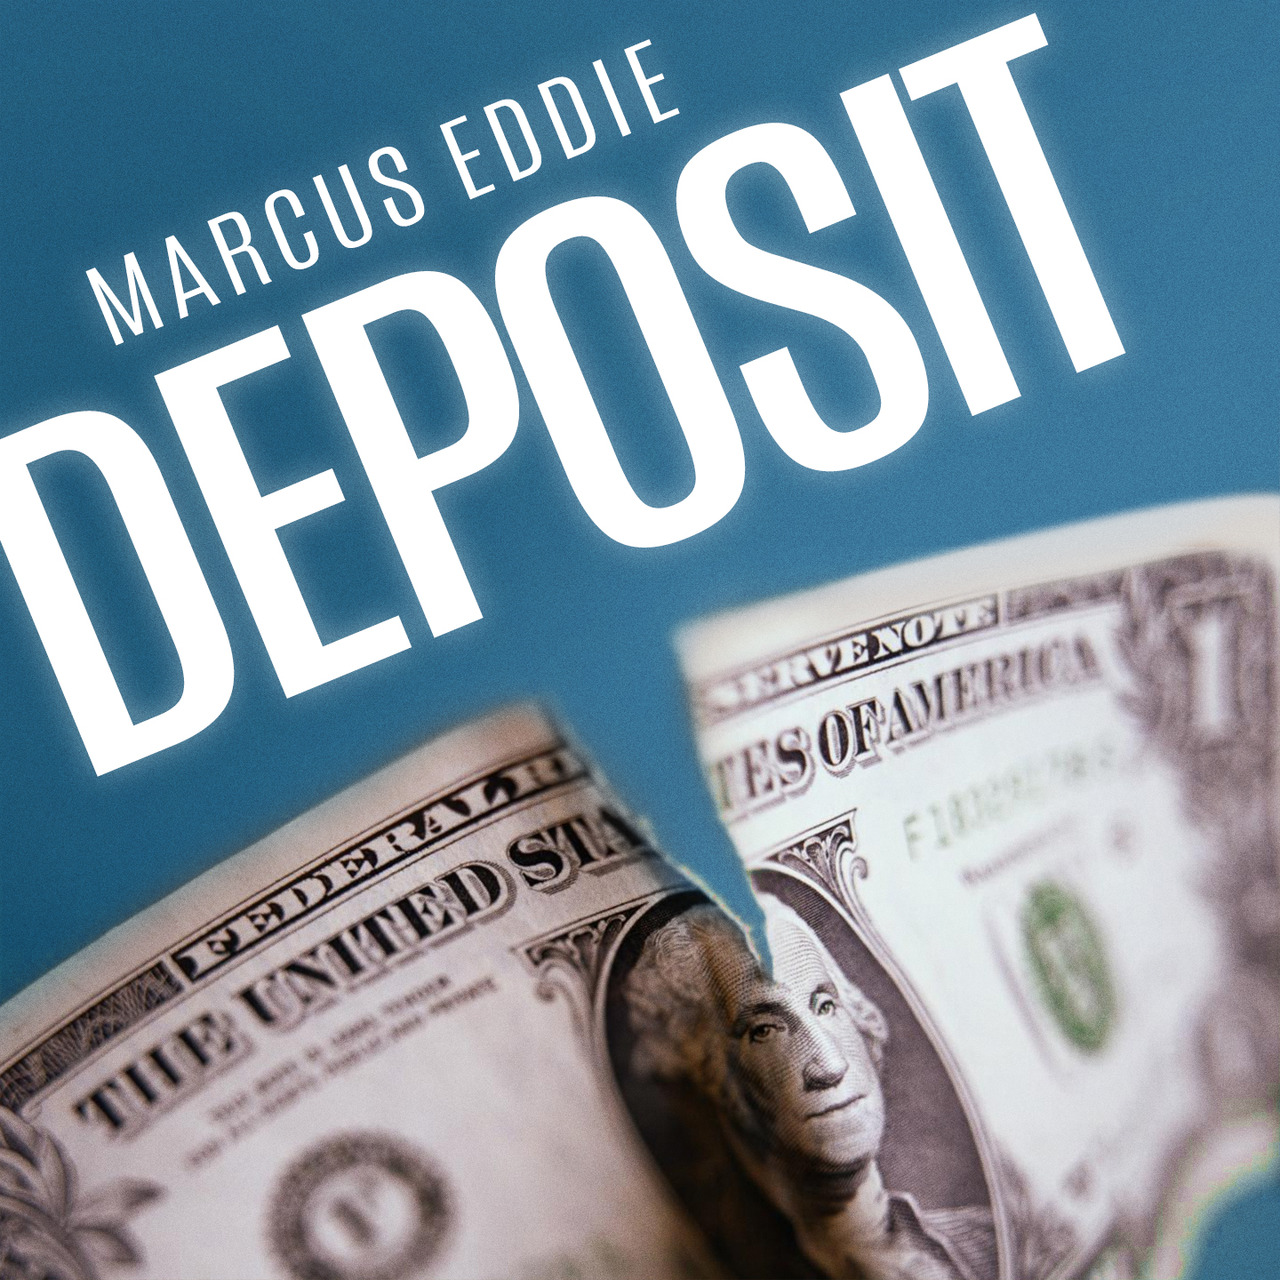 Deposit by Marcus Eddie ( Video + PDF )